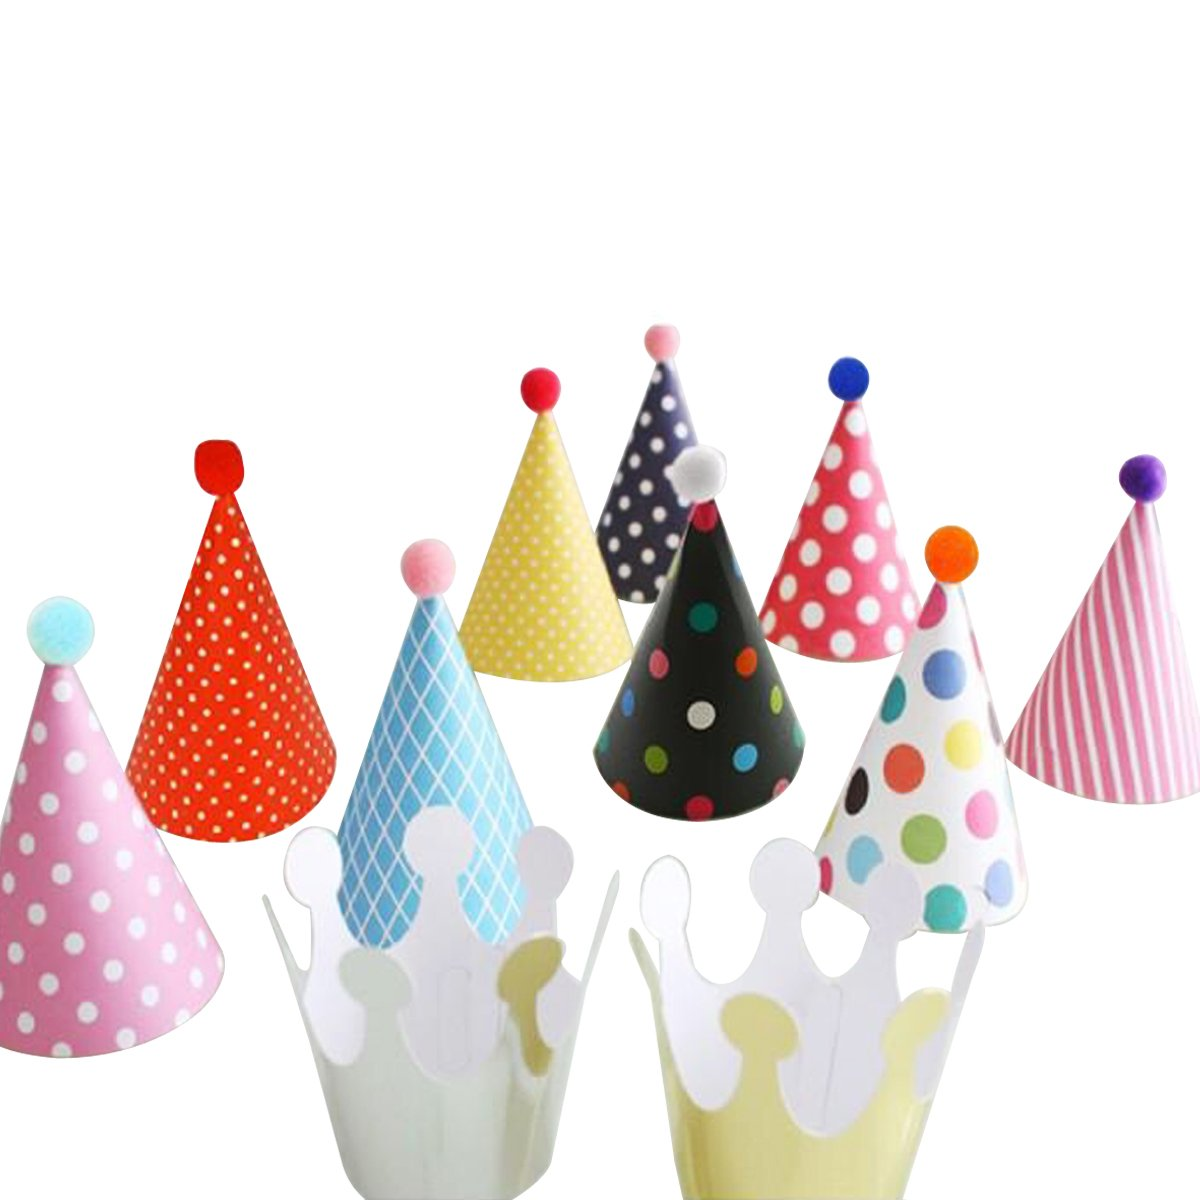 Wrapables Kids Mini-Sized Party Hats with Pom Poms and Crowns for Birthday Parties and Holidays by Wrapables